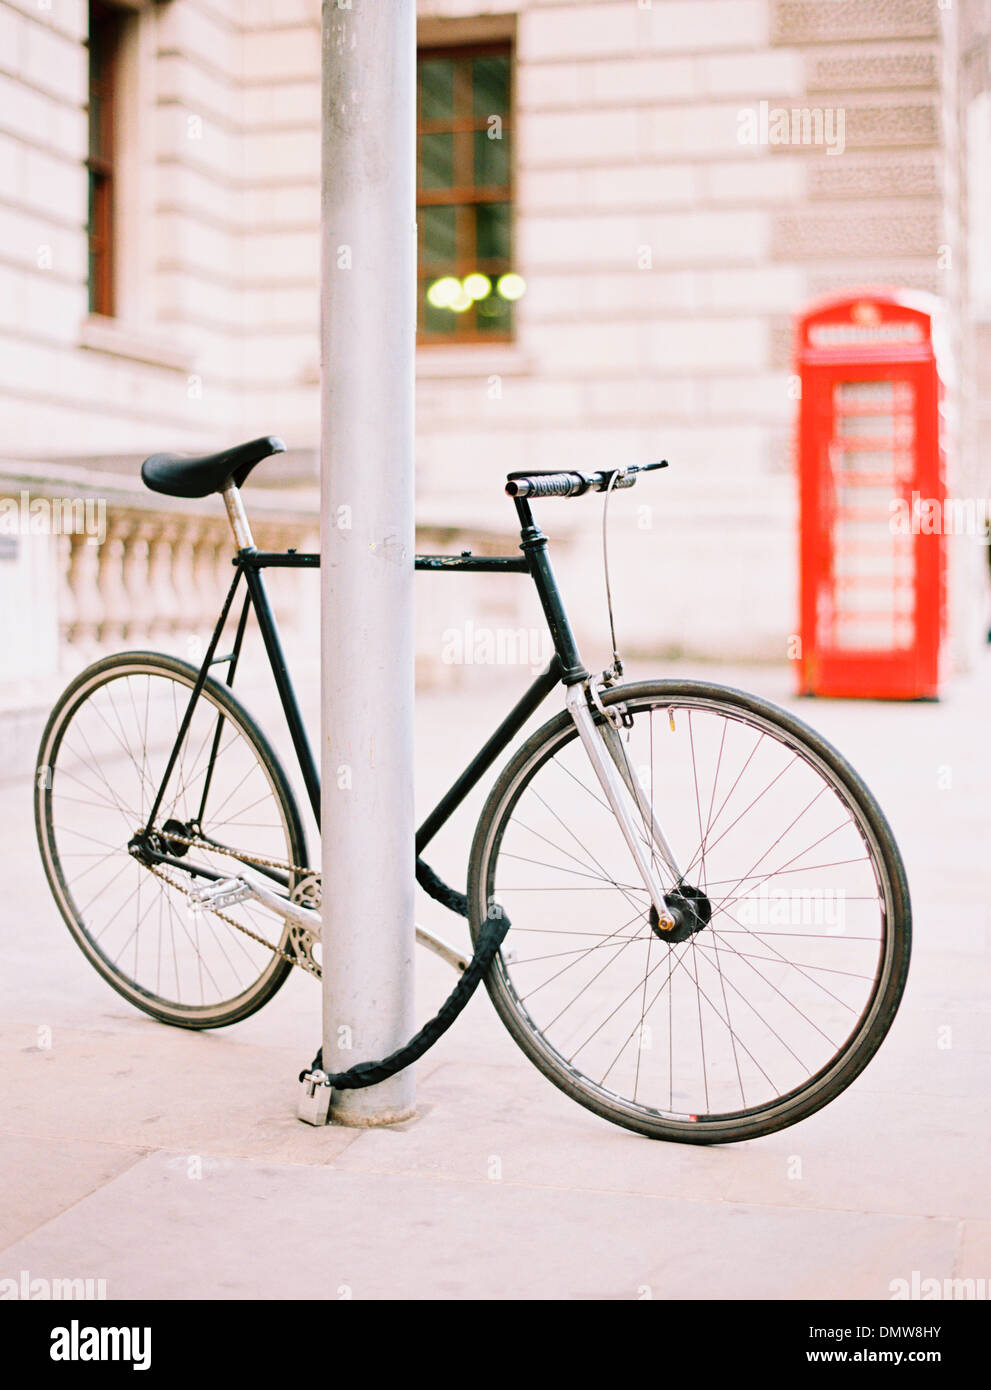 A bicycle chained and locked to a lamppost on a London street. A red public telephone box in  background. - Stock Image